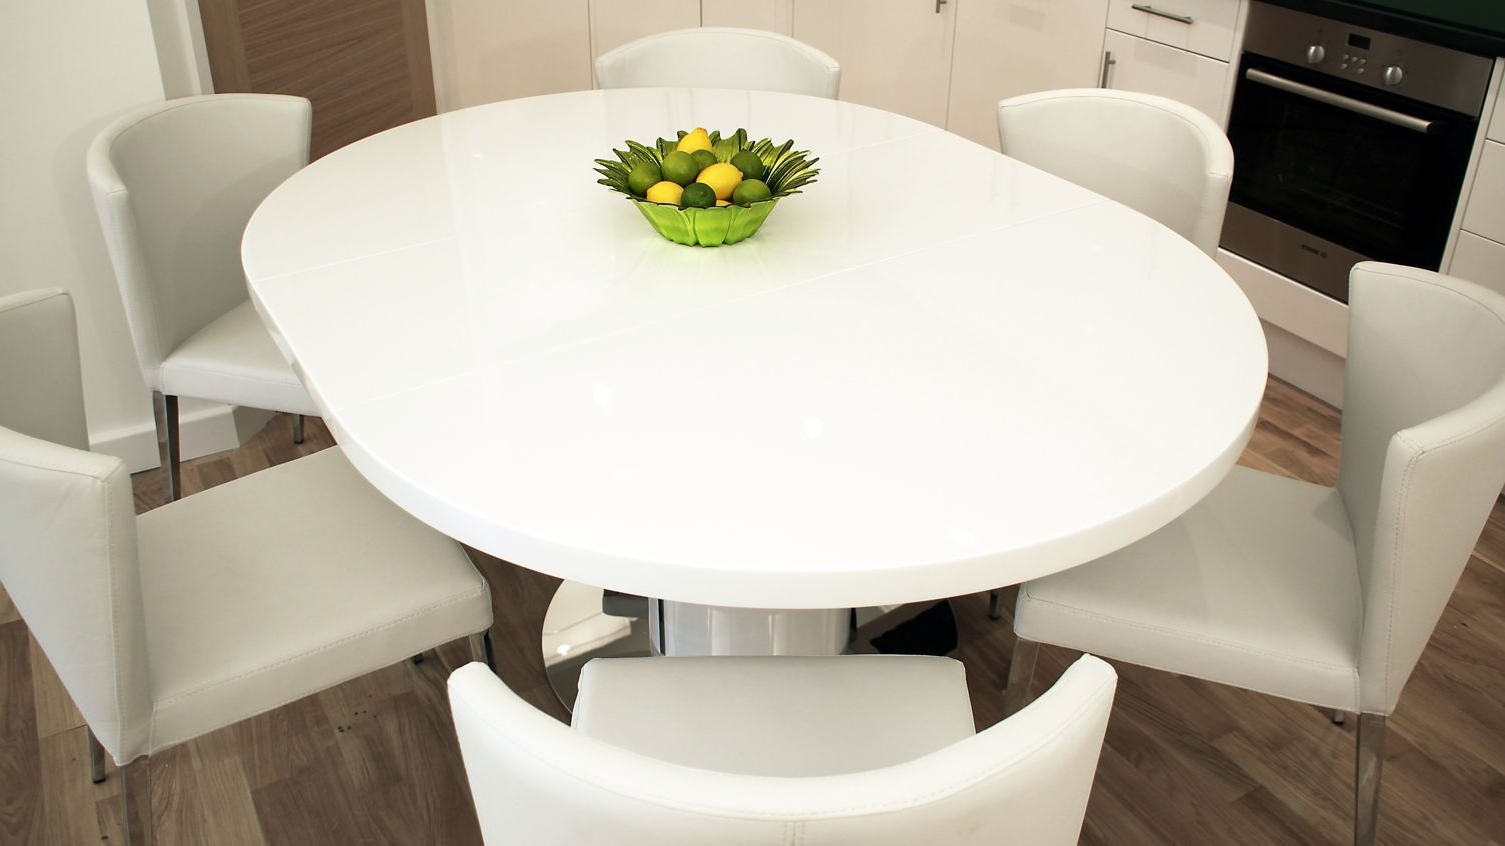 White Round Extendable Dining Tables Regarding Fashionable Morph Grey Extendable Dining Table Open Listed Extending Curva Round (View 21 of 25)